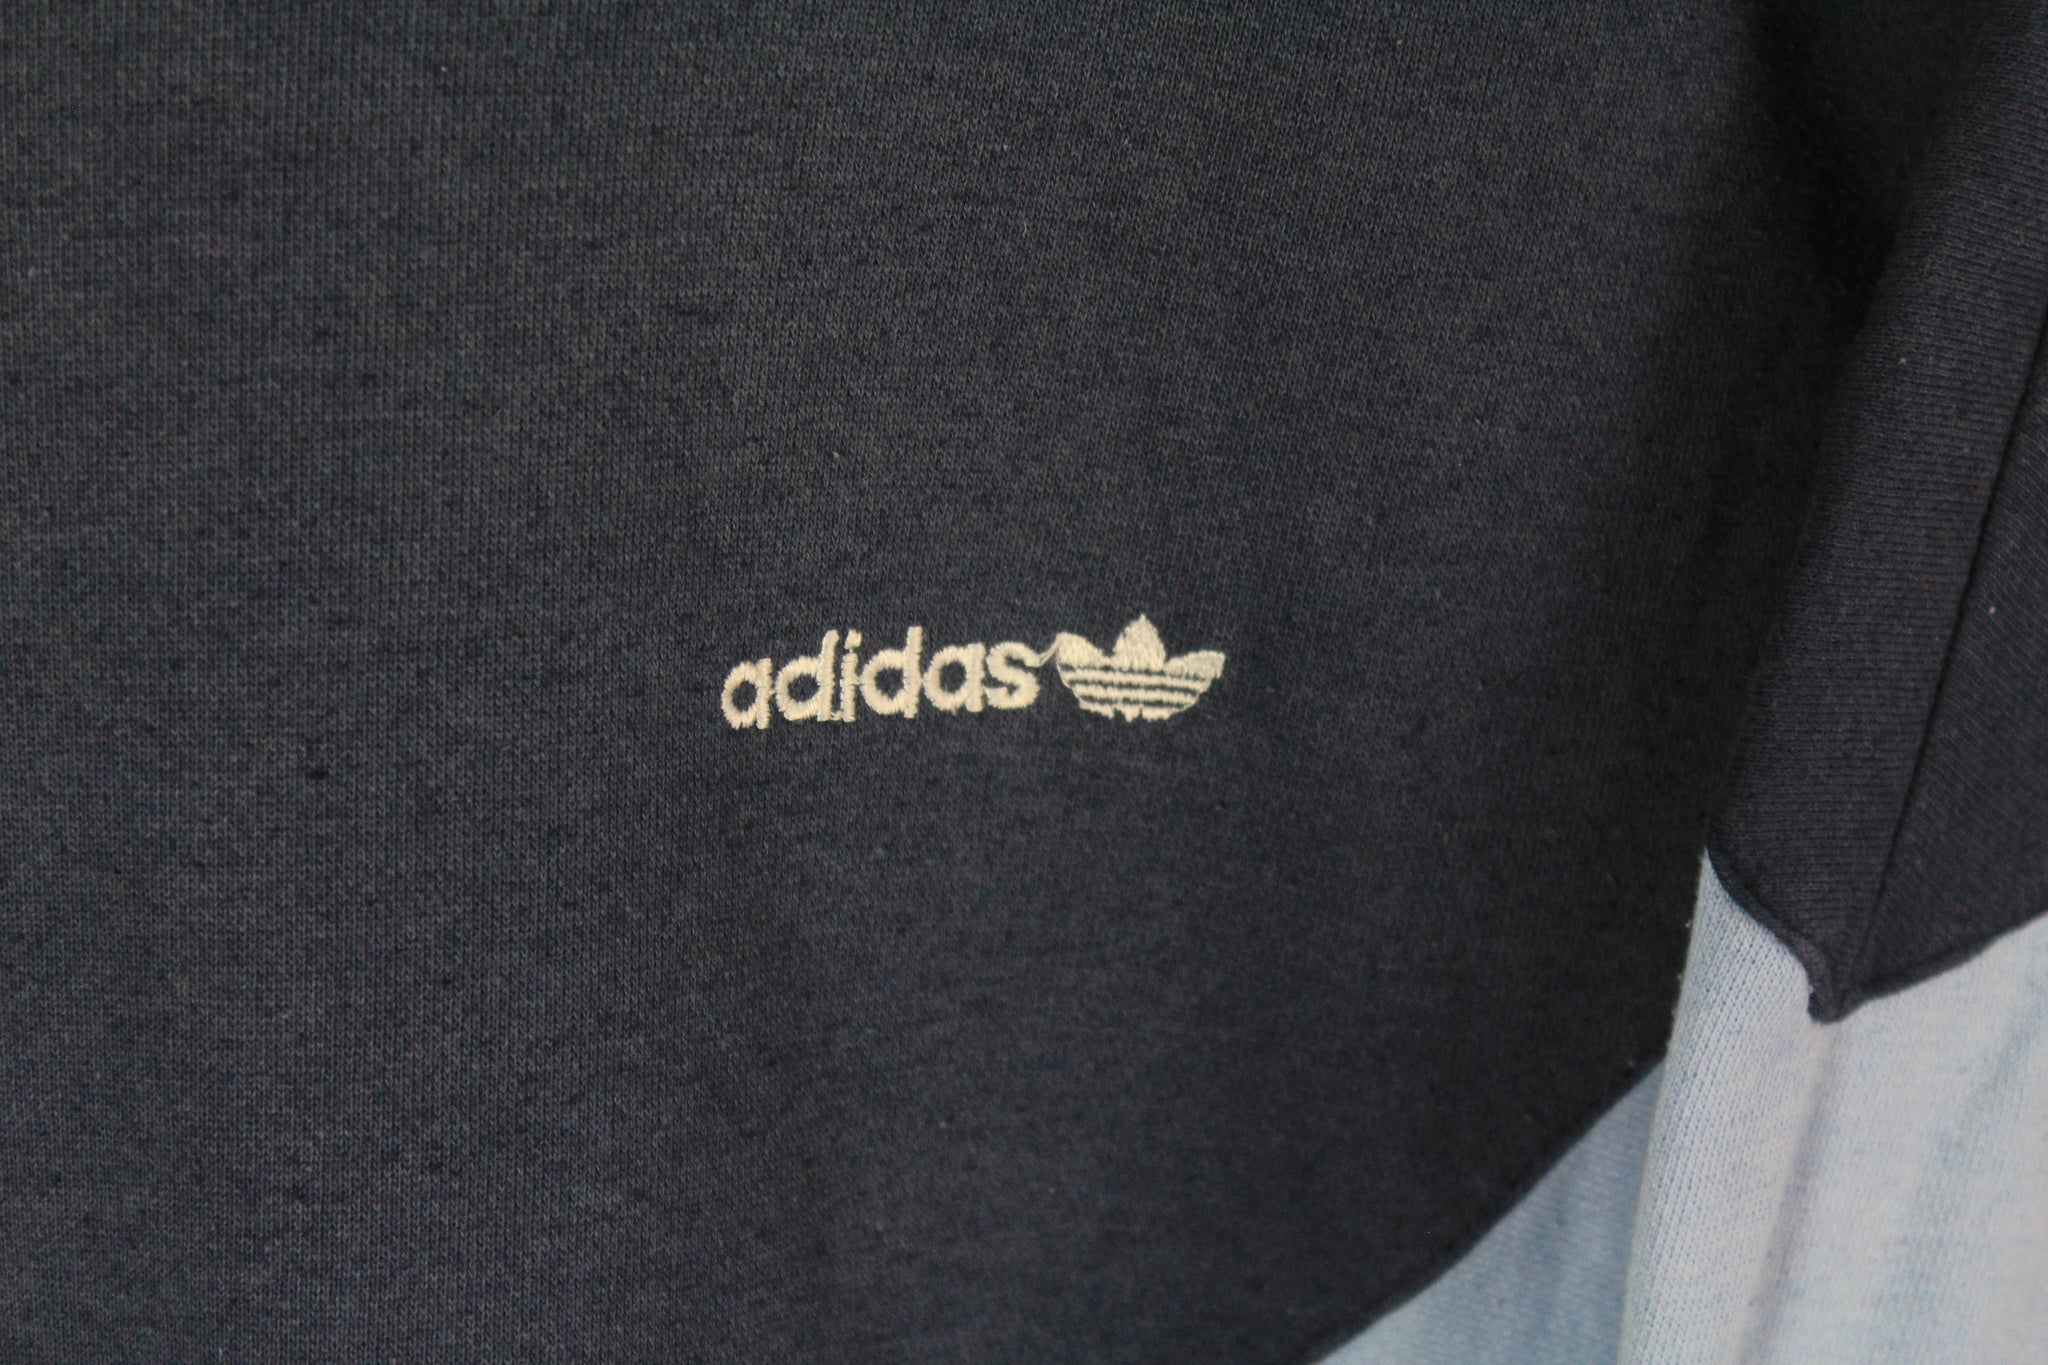 Vintage Adidas Tracksuit (Sweatshirt + Pants) Small / Medium